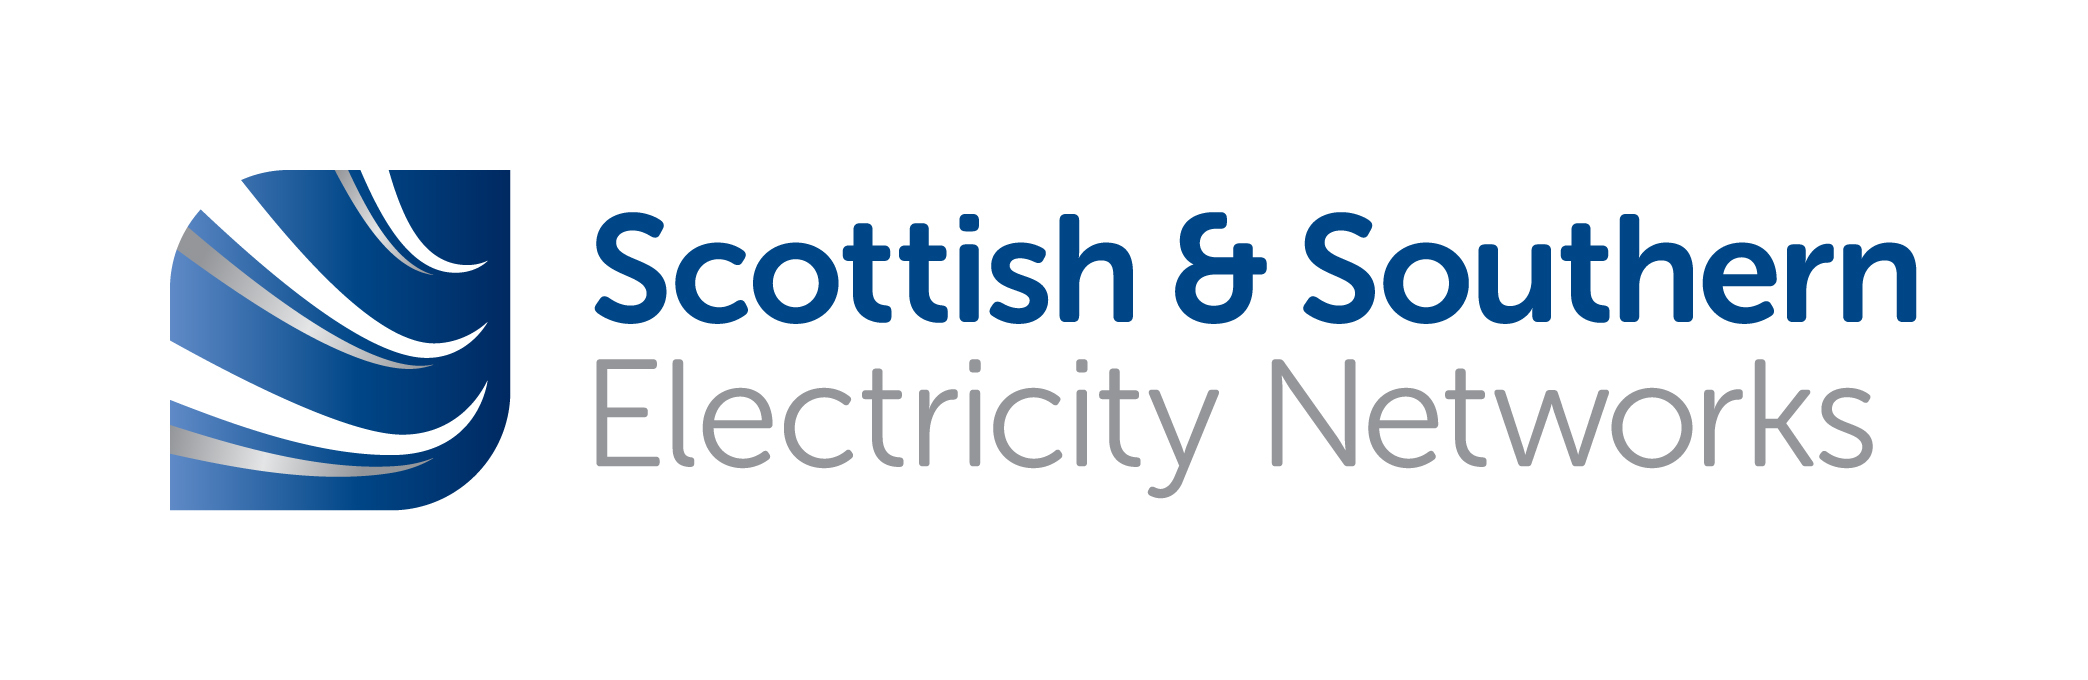 SSEN Networks restored power within 30 minutes when it was damaged during the night.